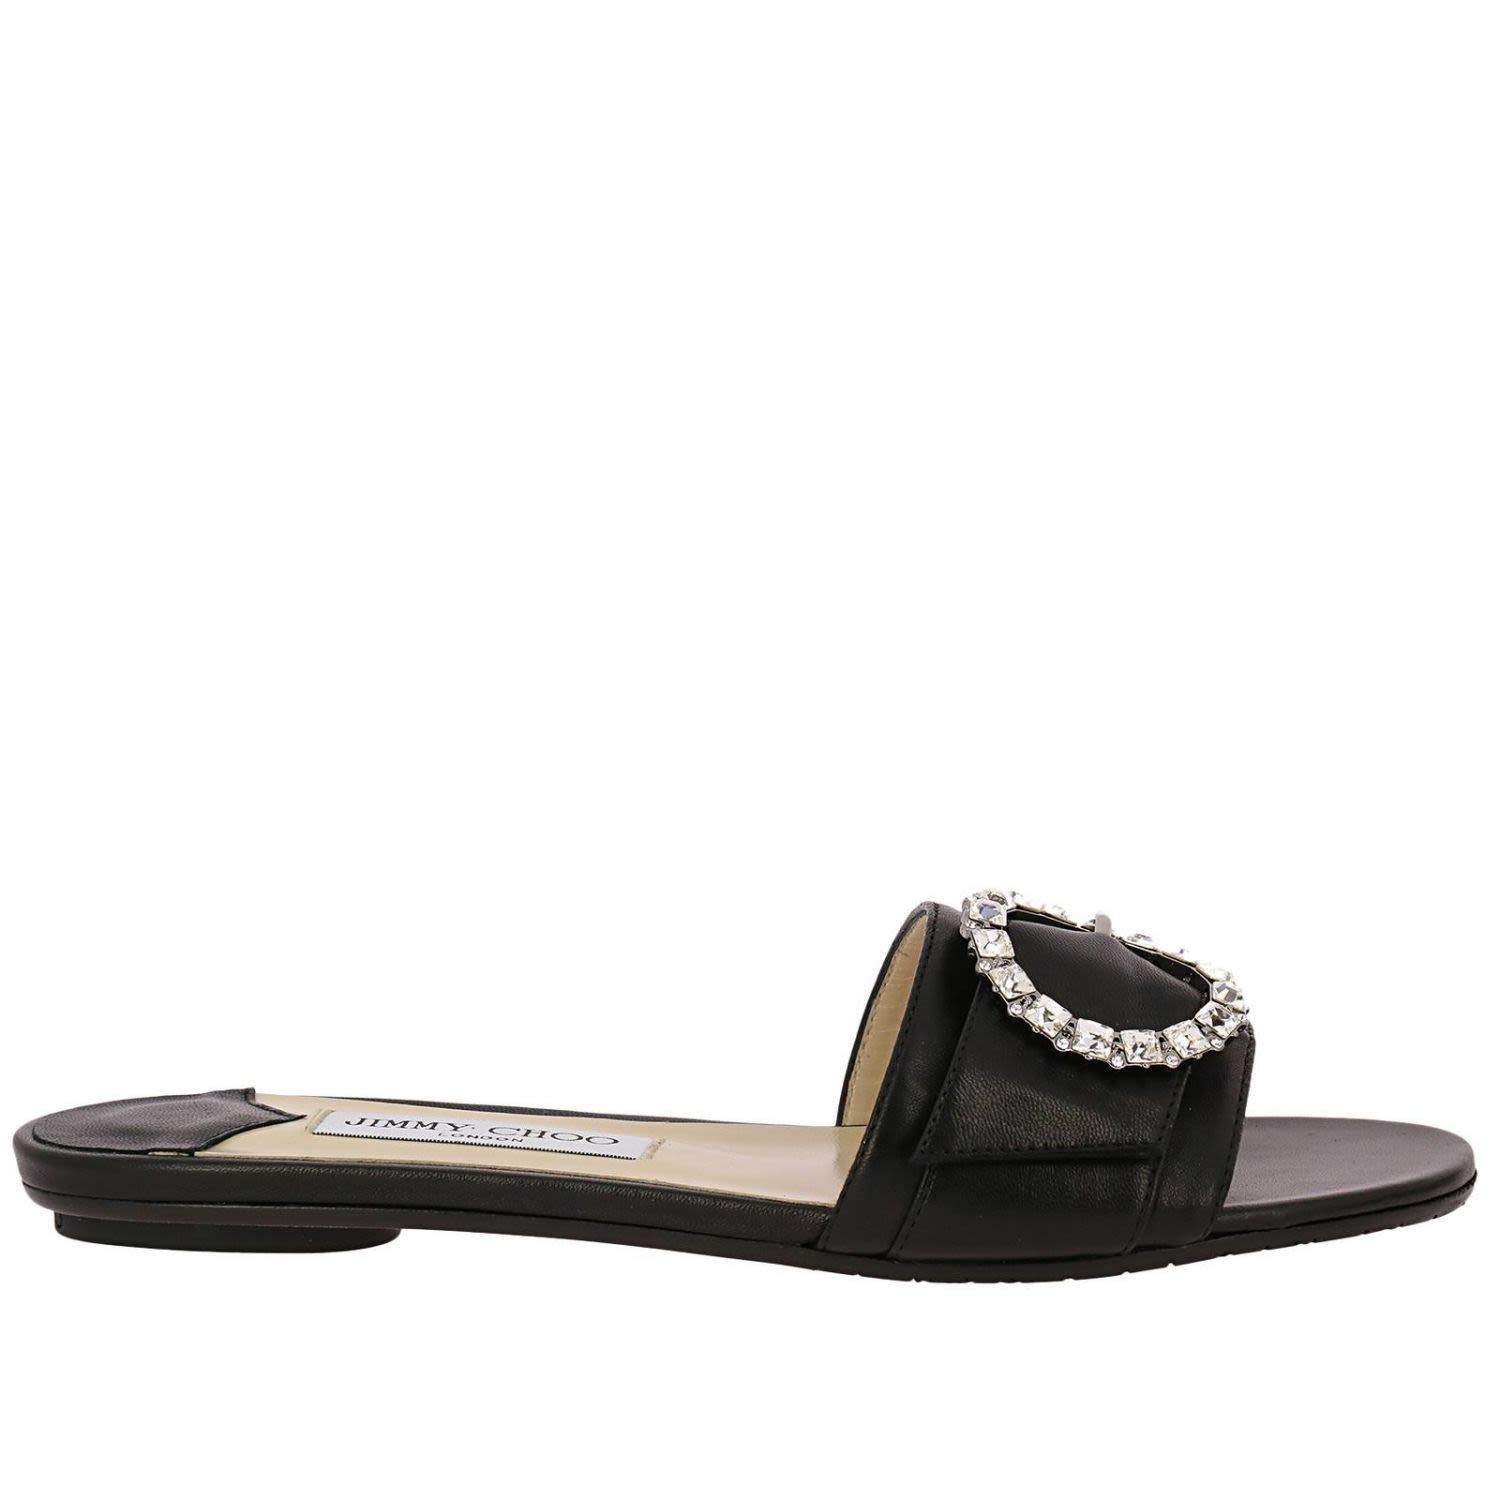 bfd73a5c3f Jimmy Choo Jimmy Choo Flat Sandals Shoes Women Jimmy Choo - black ...